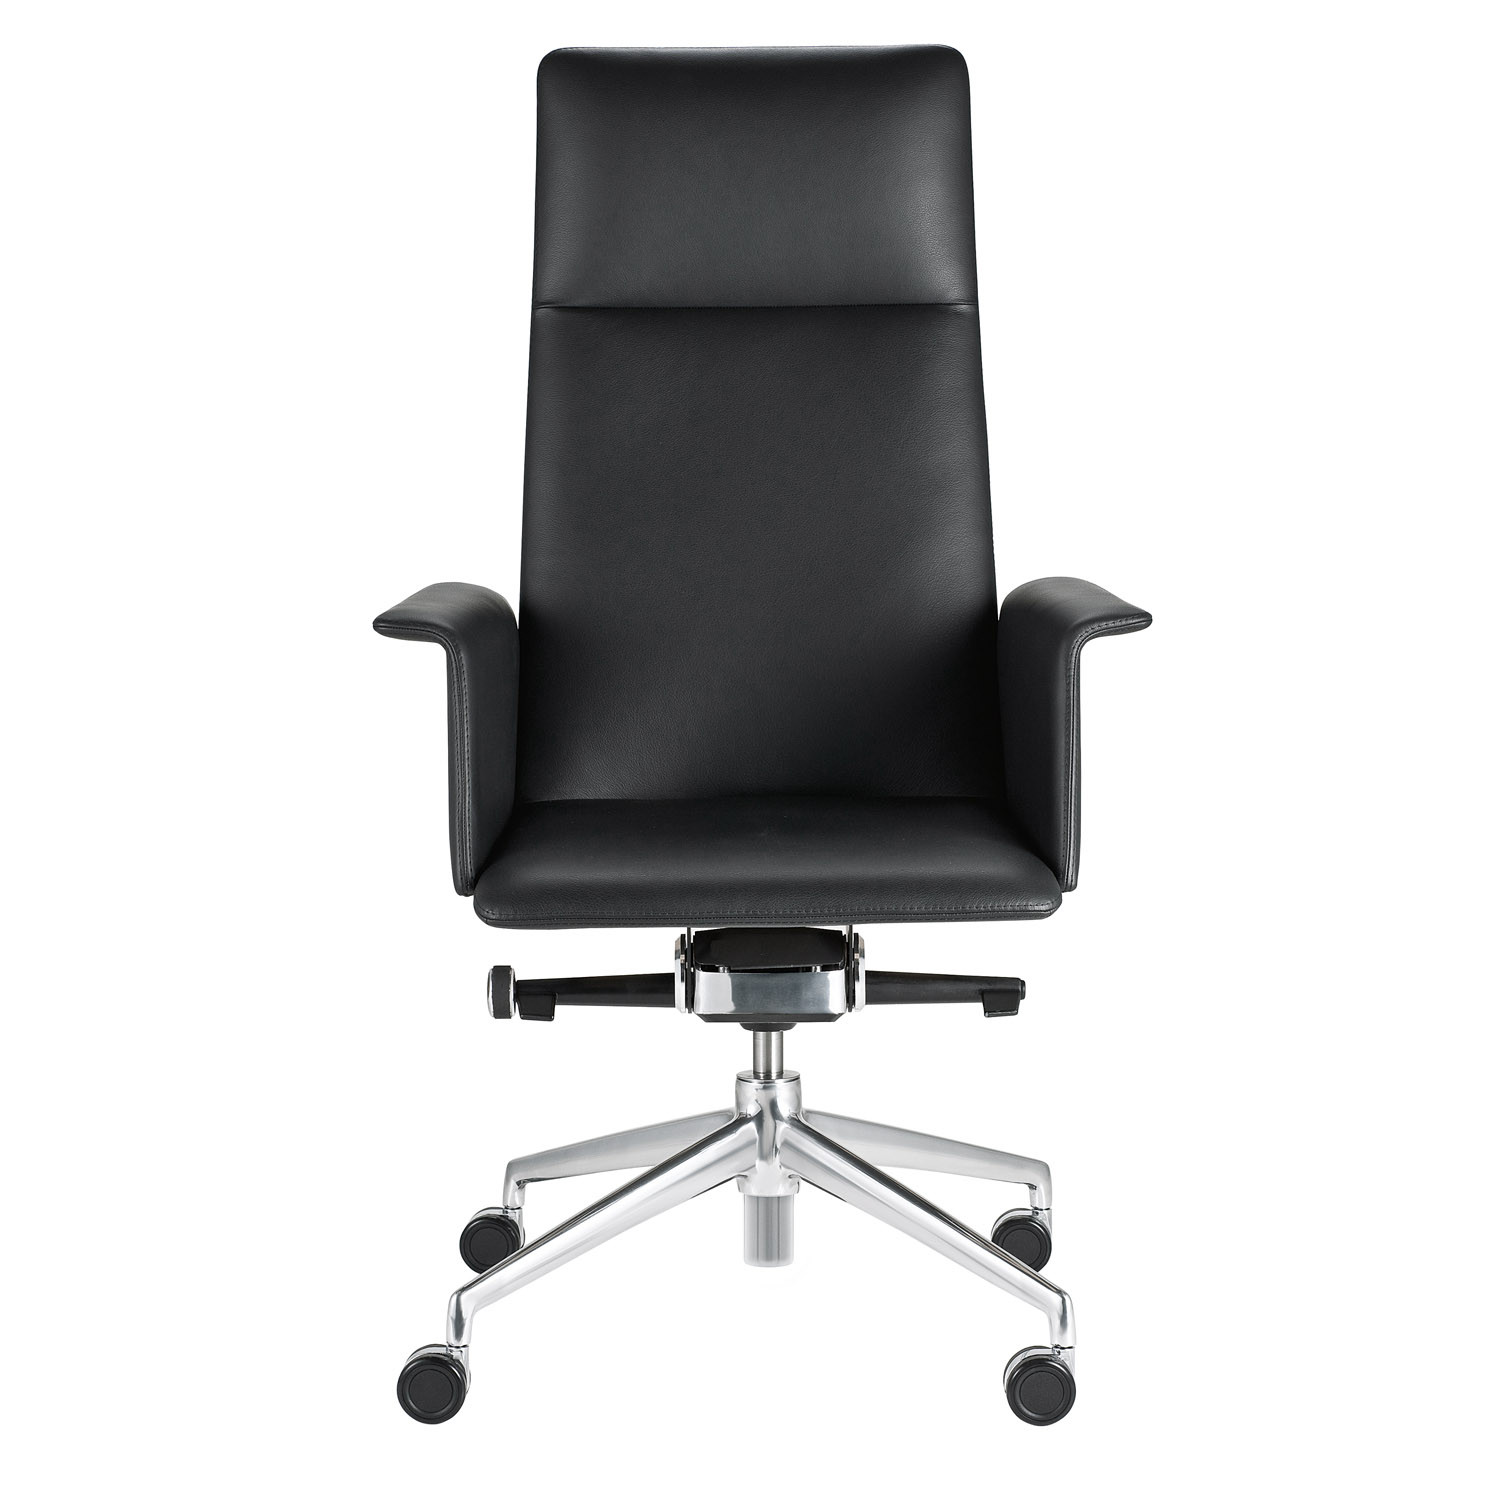 FinaSoft Executive Swivel Armchair - upholstered armrests